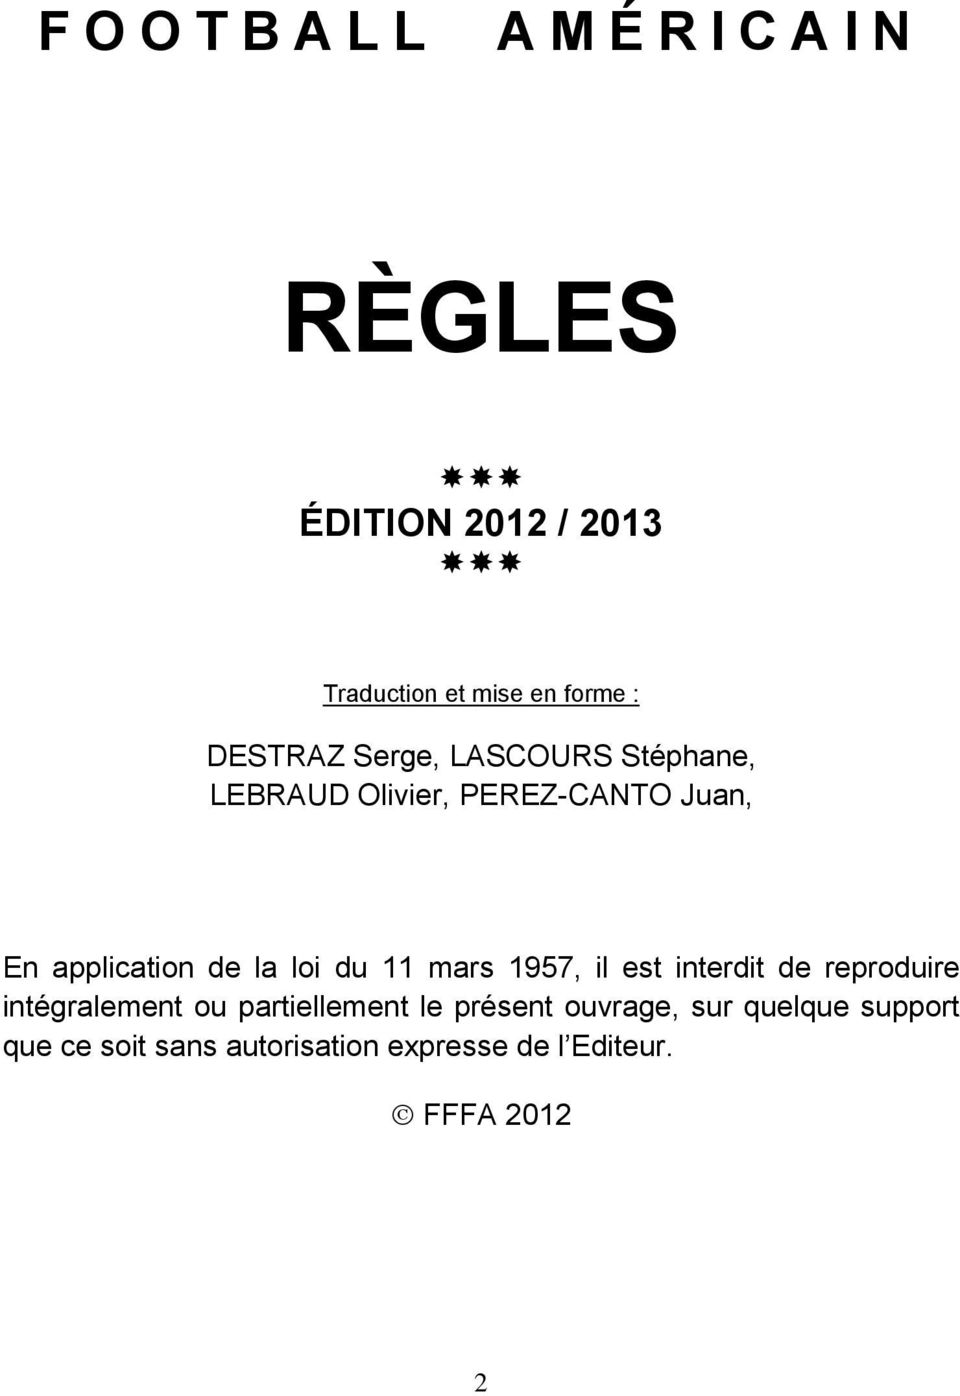 Regles Football Americain Edition 2012 Pdf